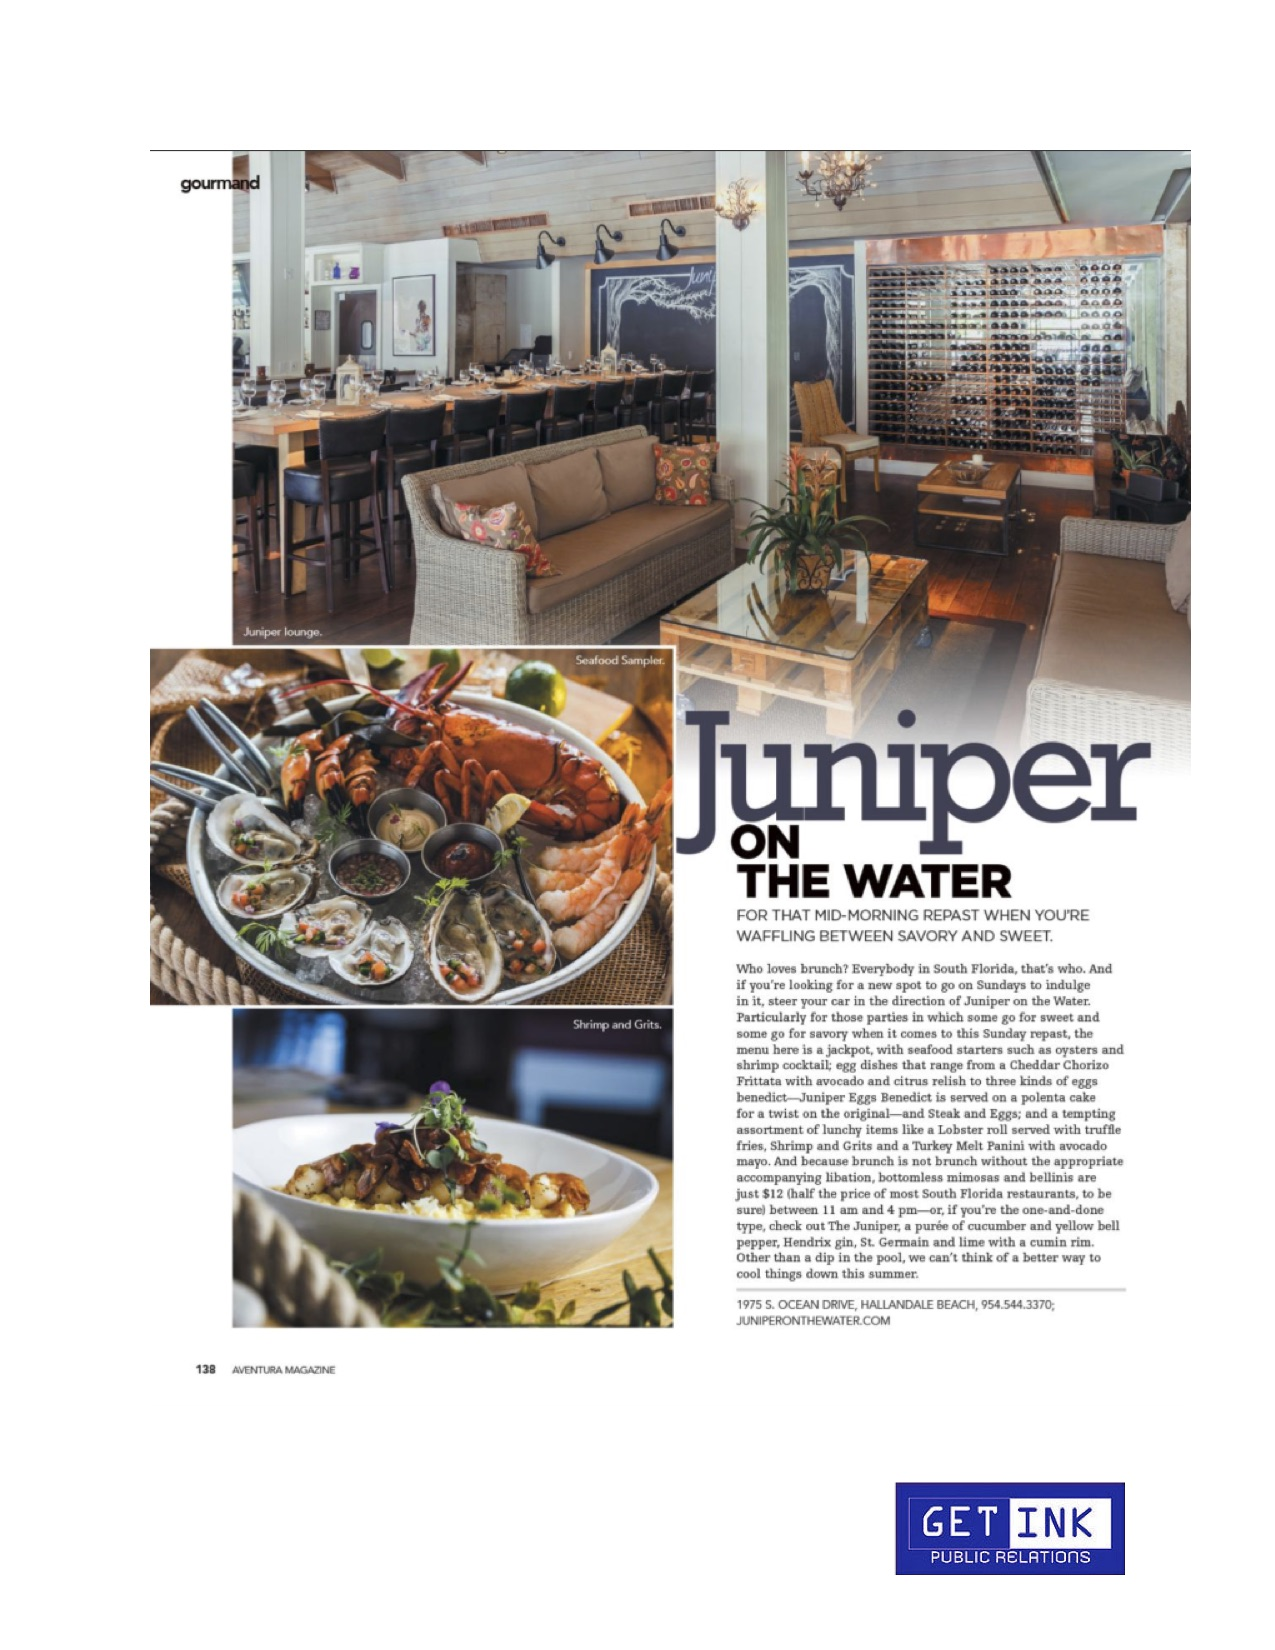 Juniper.AventuraMagazine.June.2017.2.